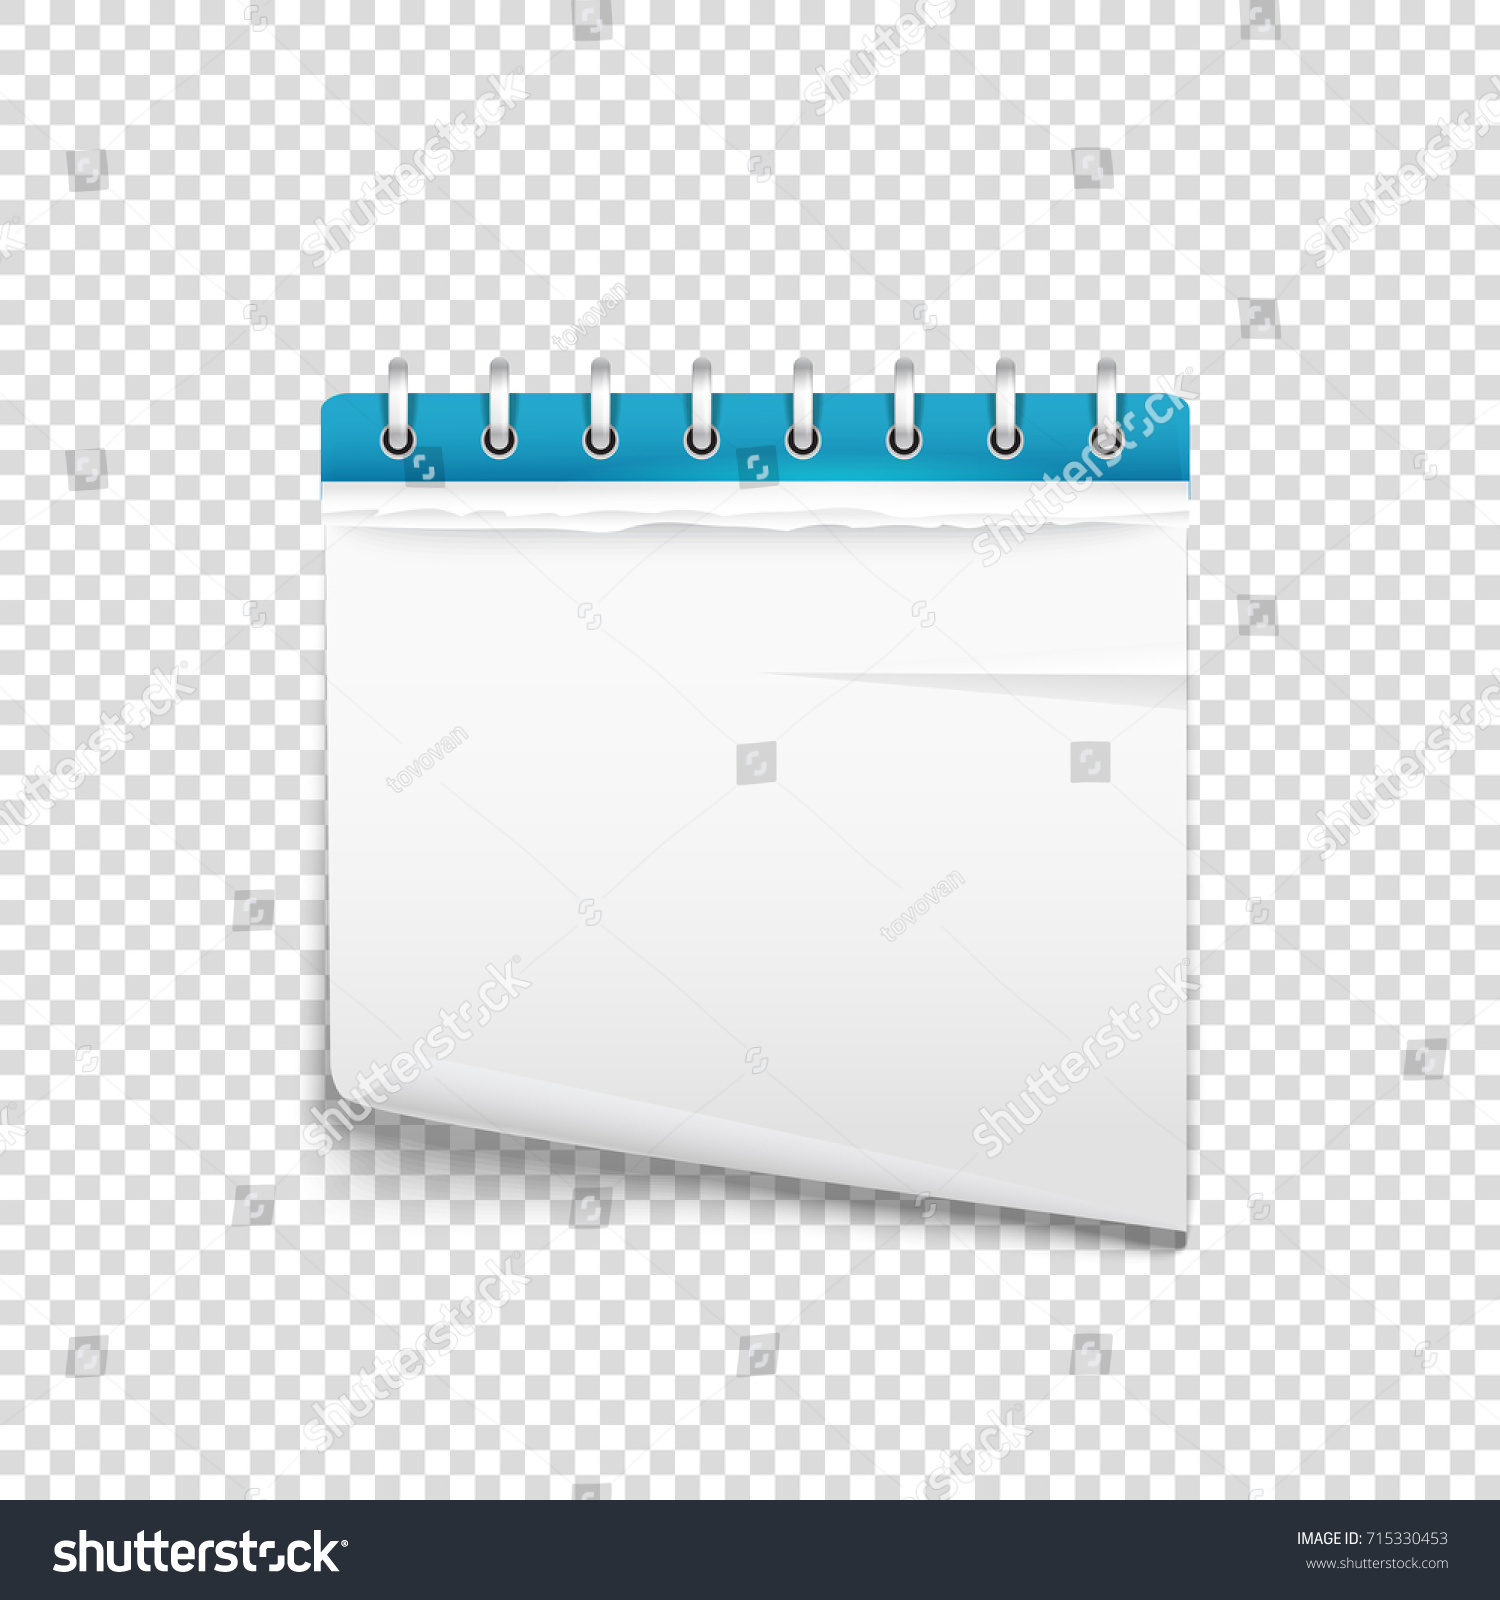 Paper Diary On Transparent Background Vector Stock Vector Stock Vector Paper  Diary On Transparent Background Vector Mockup Template For A Text 715330453  ...  Diary Paper Template